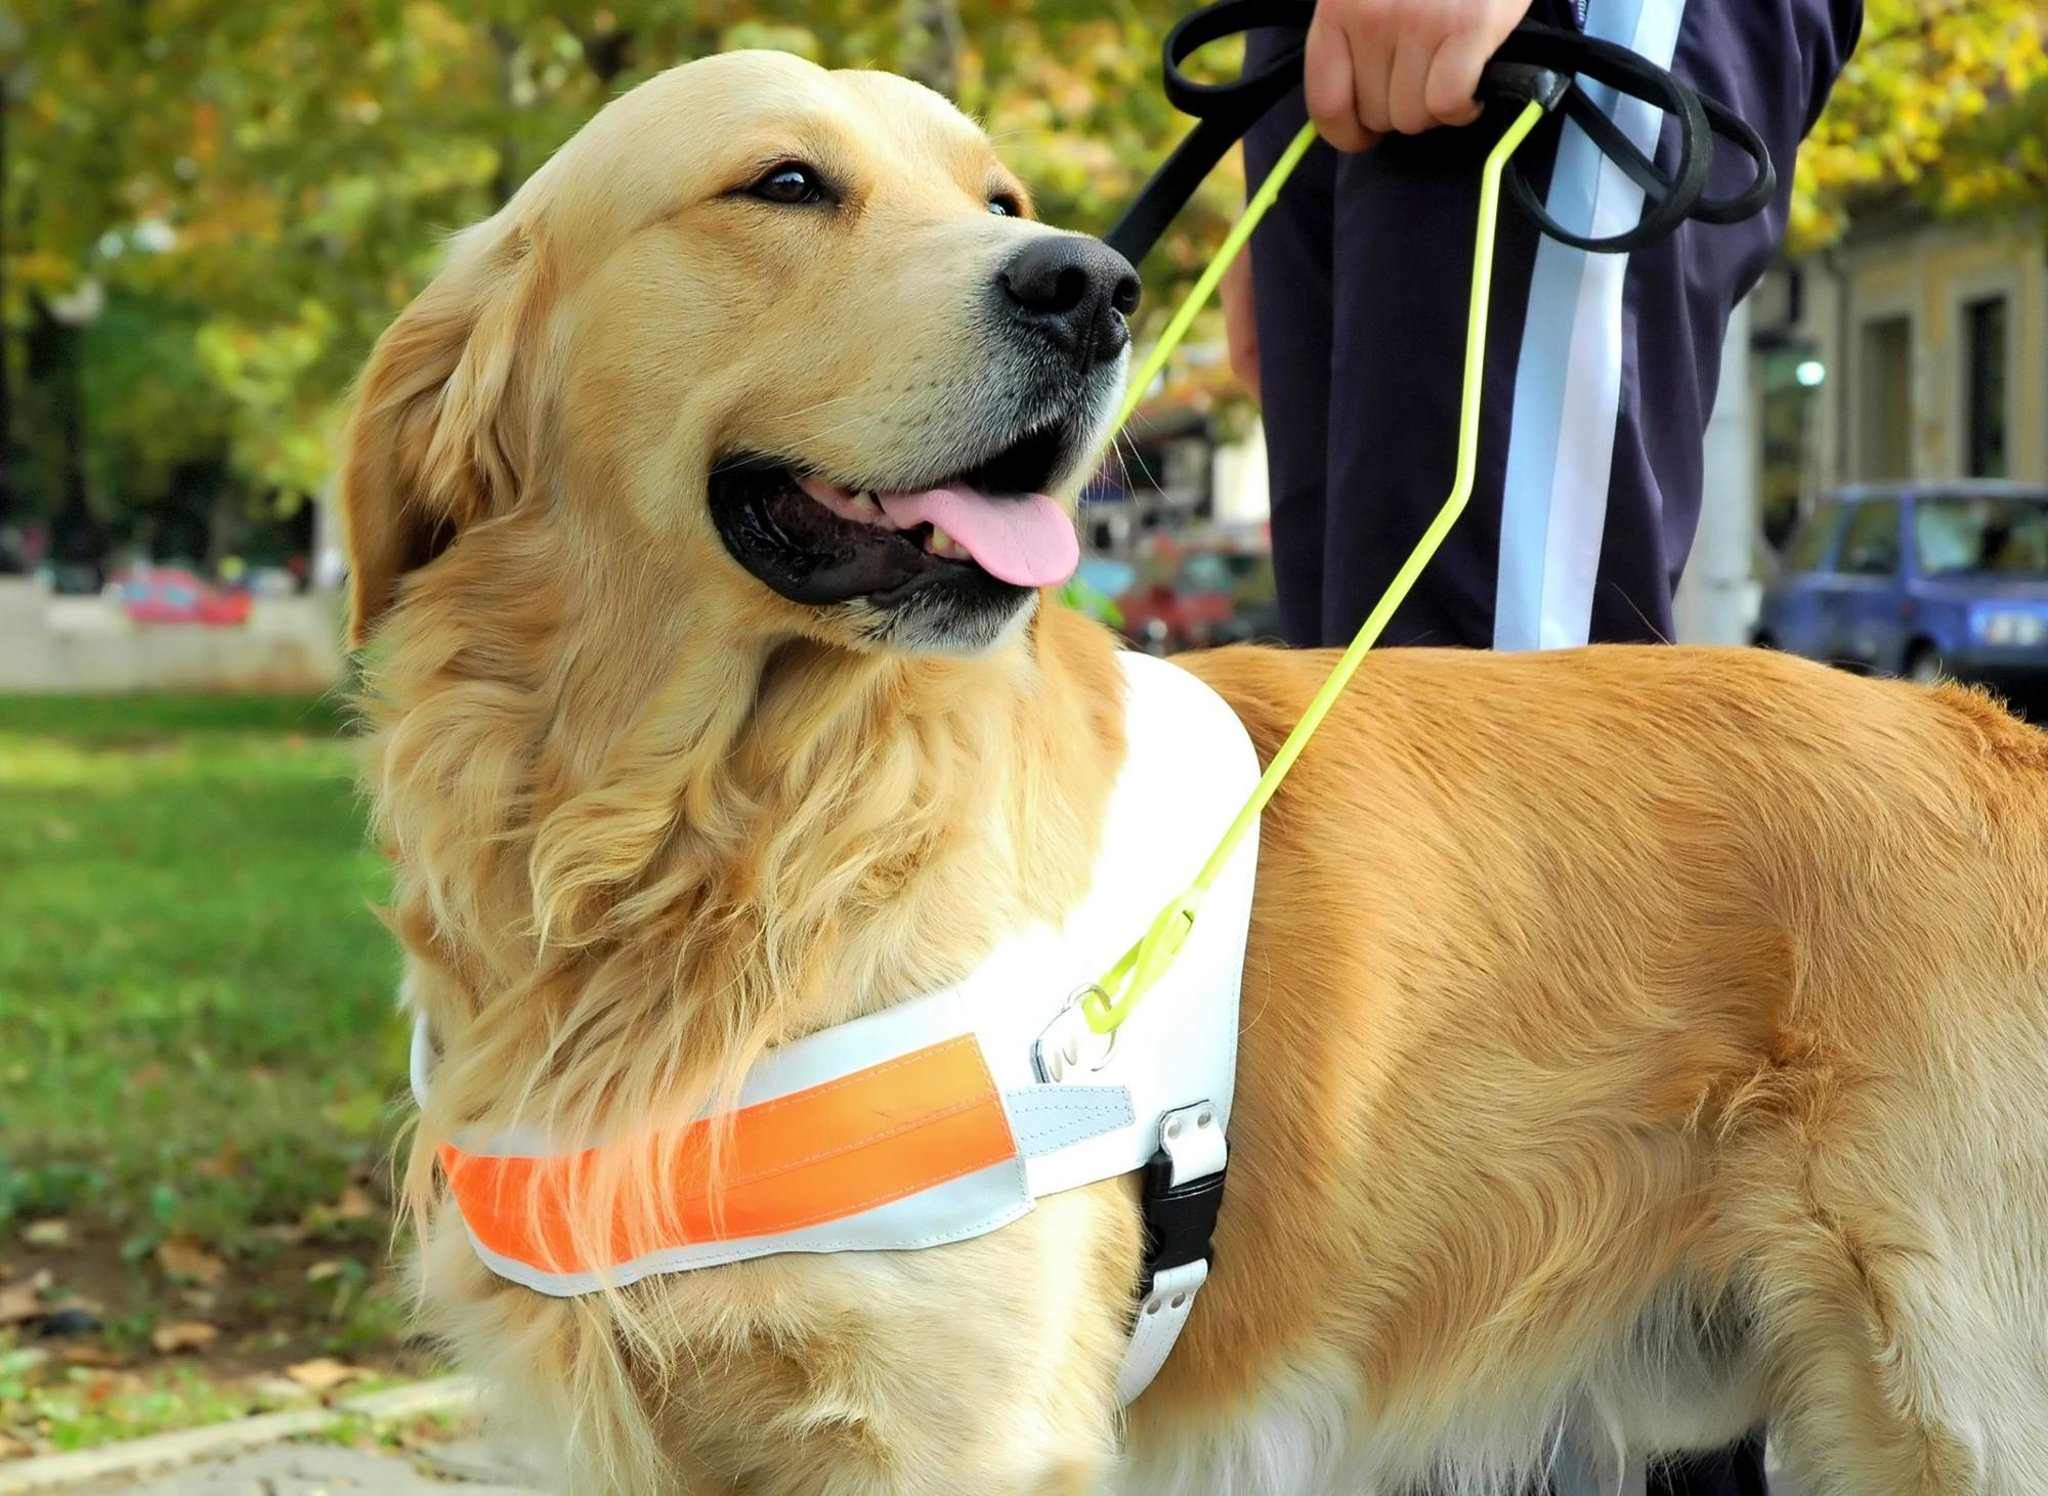 The 10 most useful breeds of working dog that make all of our lives better